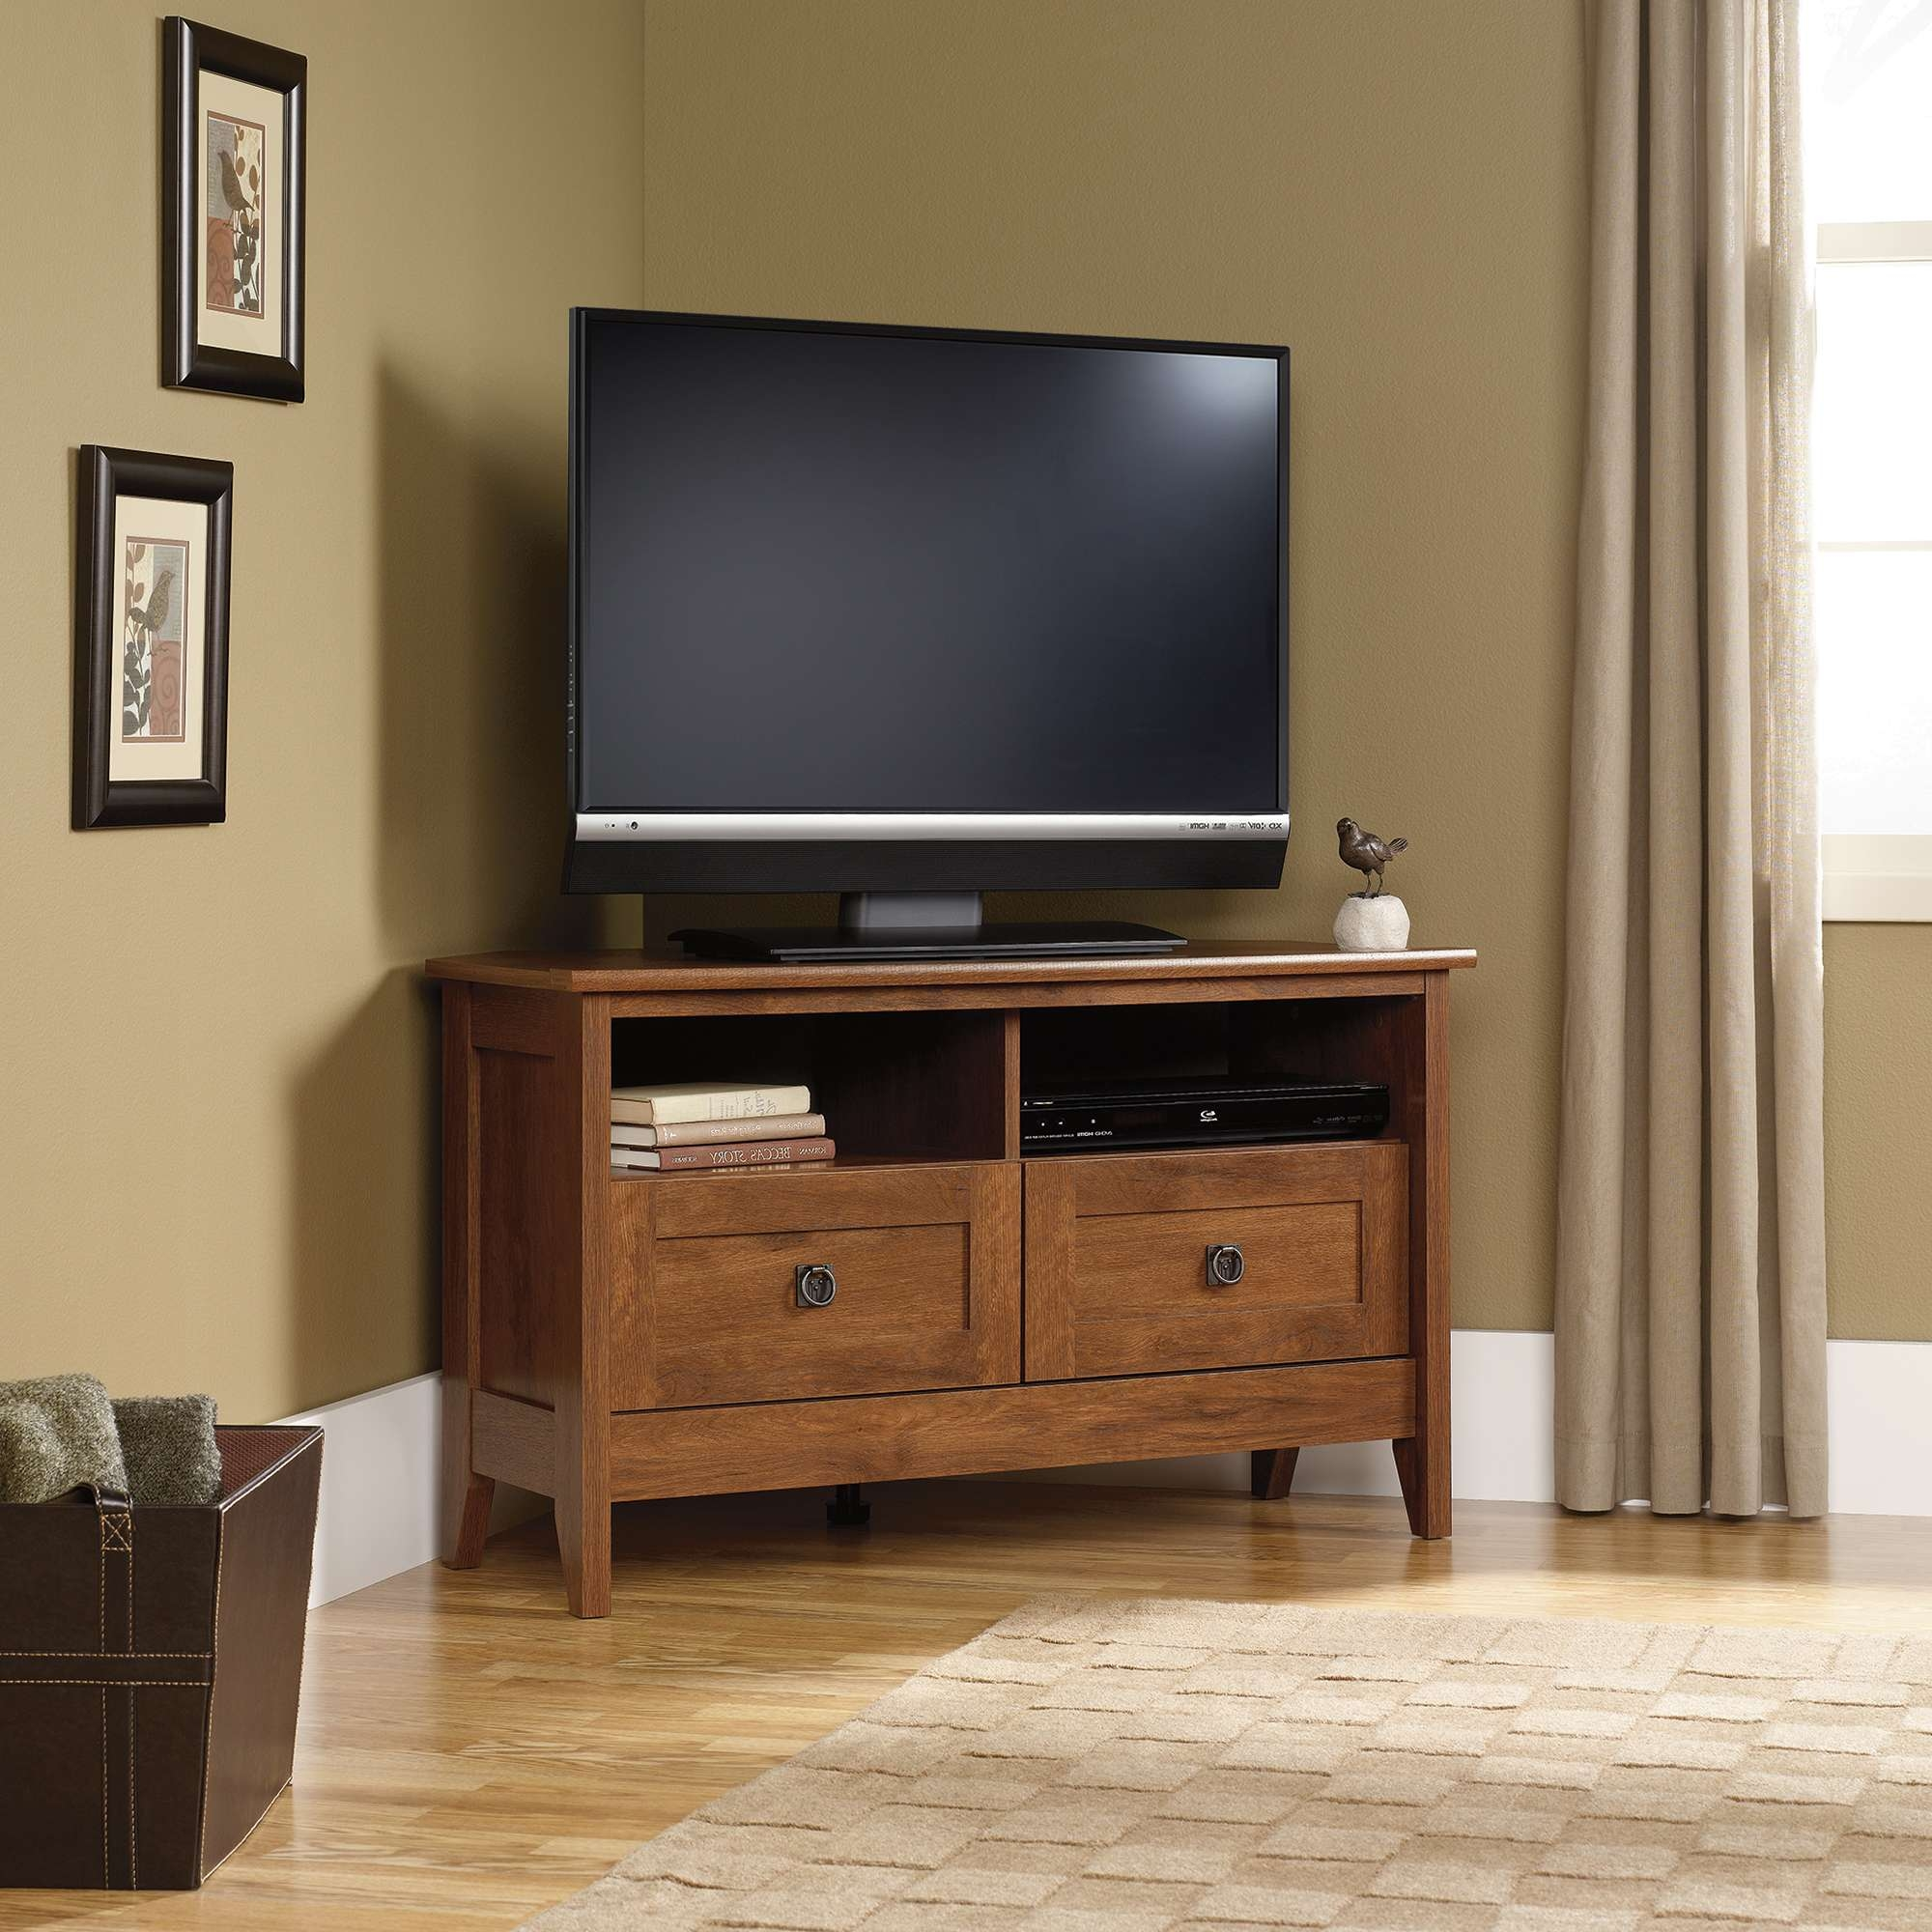 Sauder Select | Corner Tv Stand | 410627 | Sauder For Tv Stands Corner Units (View 14 of 15)